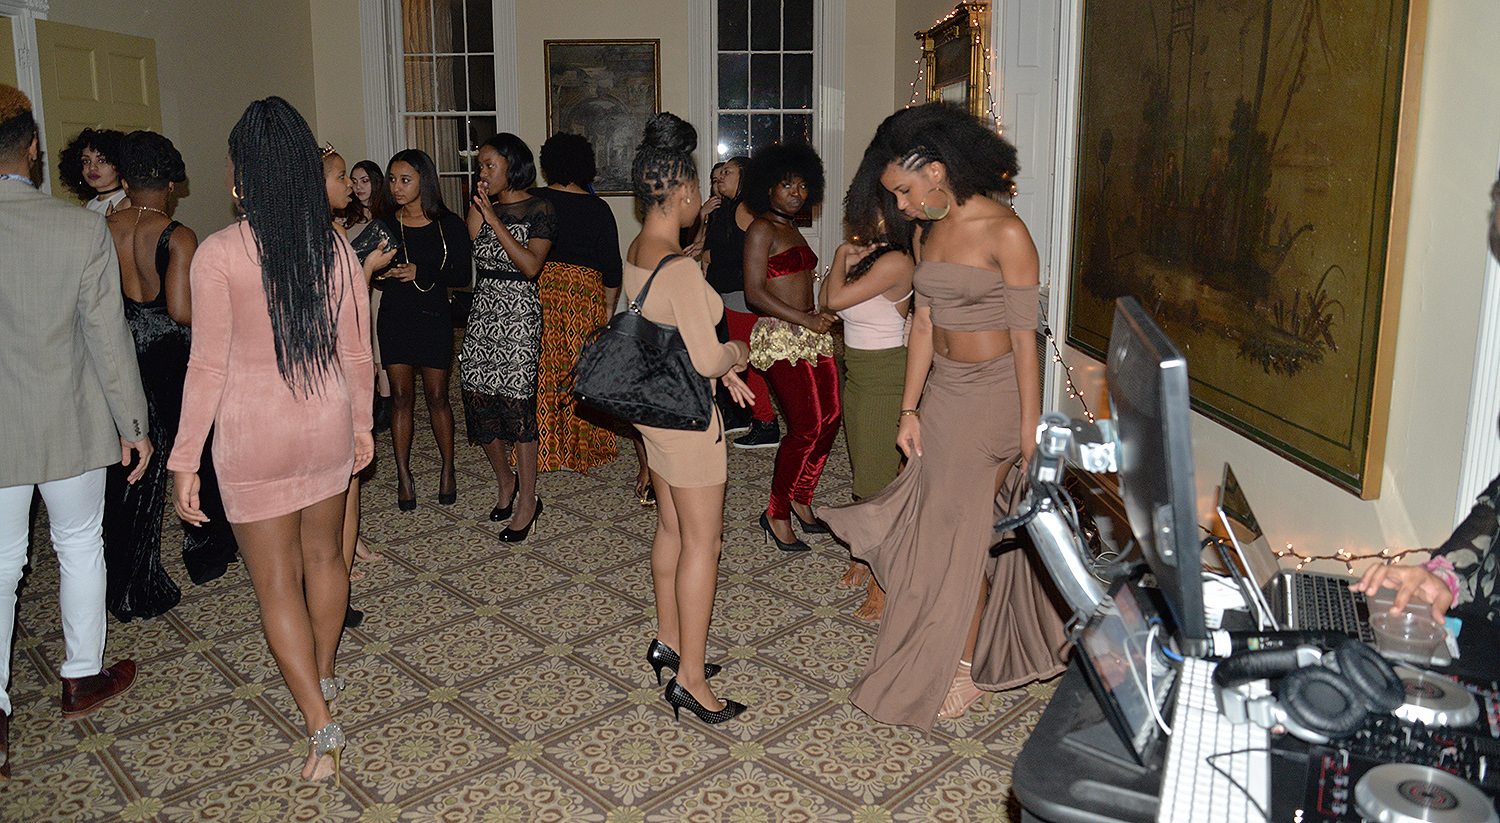 The Black History Month formal celebration allowed students to glam up and enjoy a dance party with a DJ.